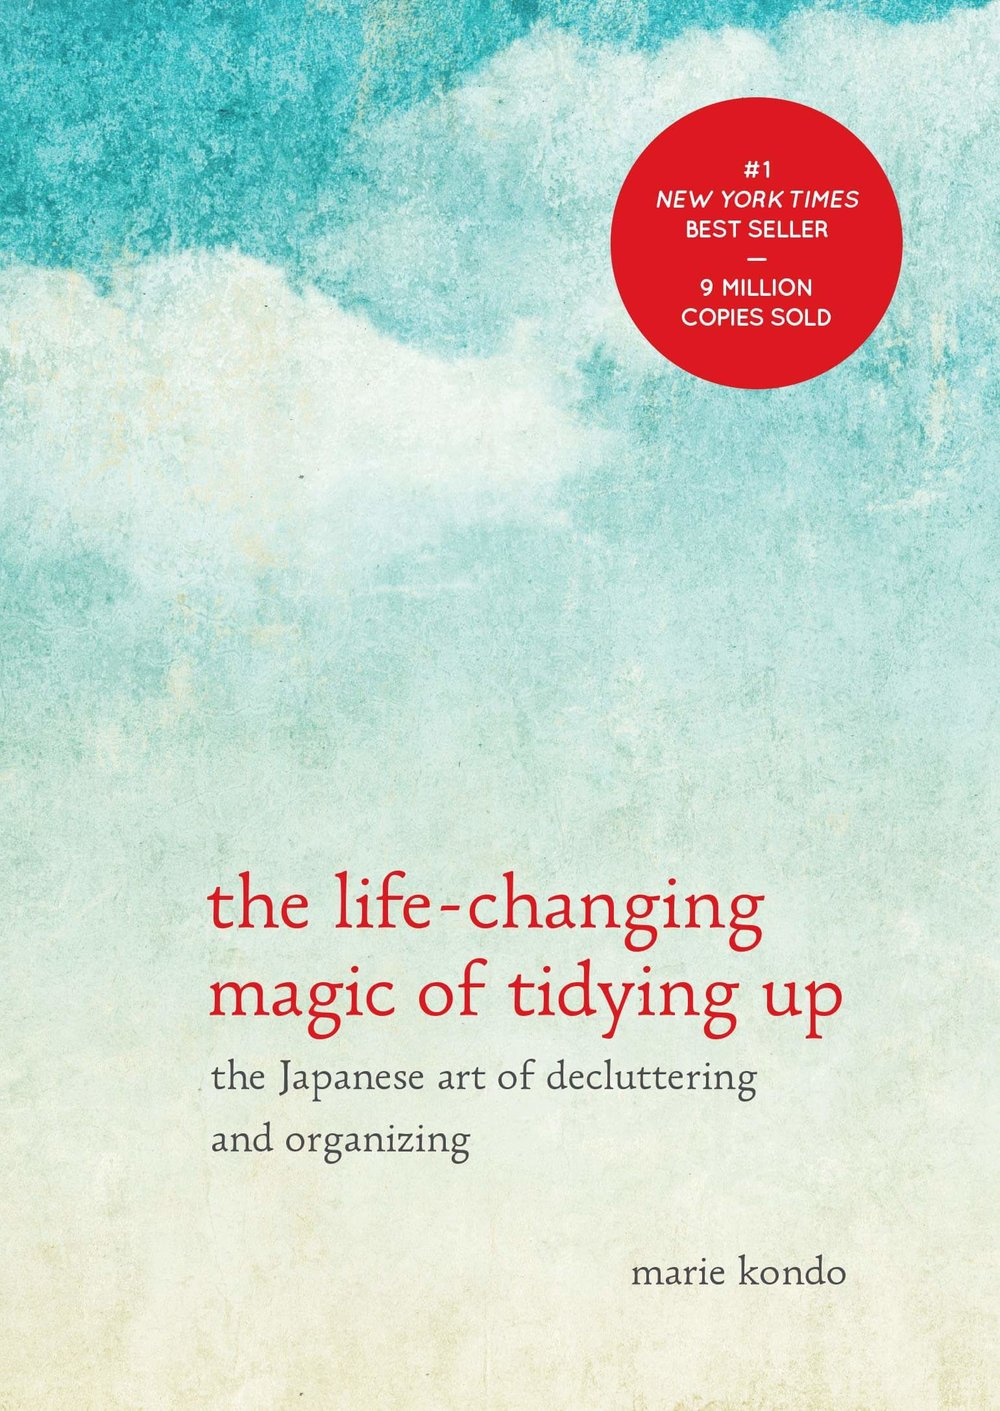 The Life-Changing Magic of Tidying Up Marie Kondo